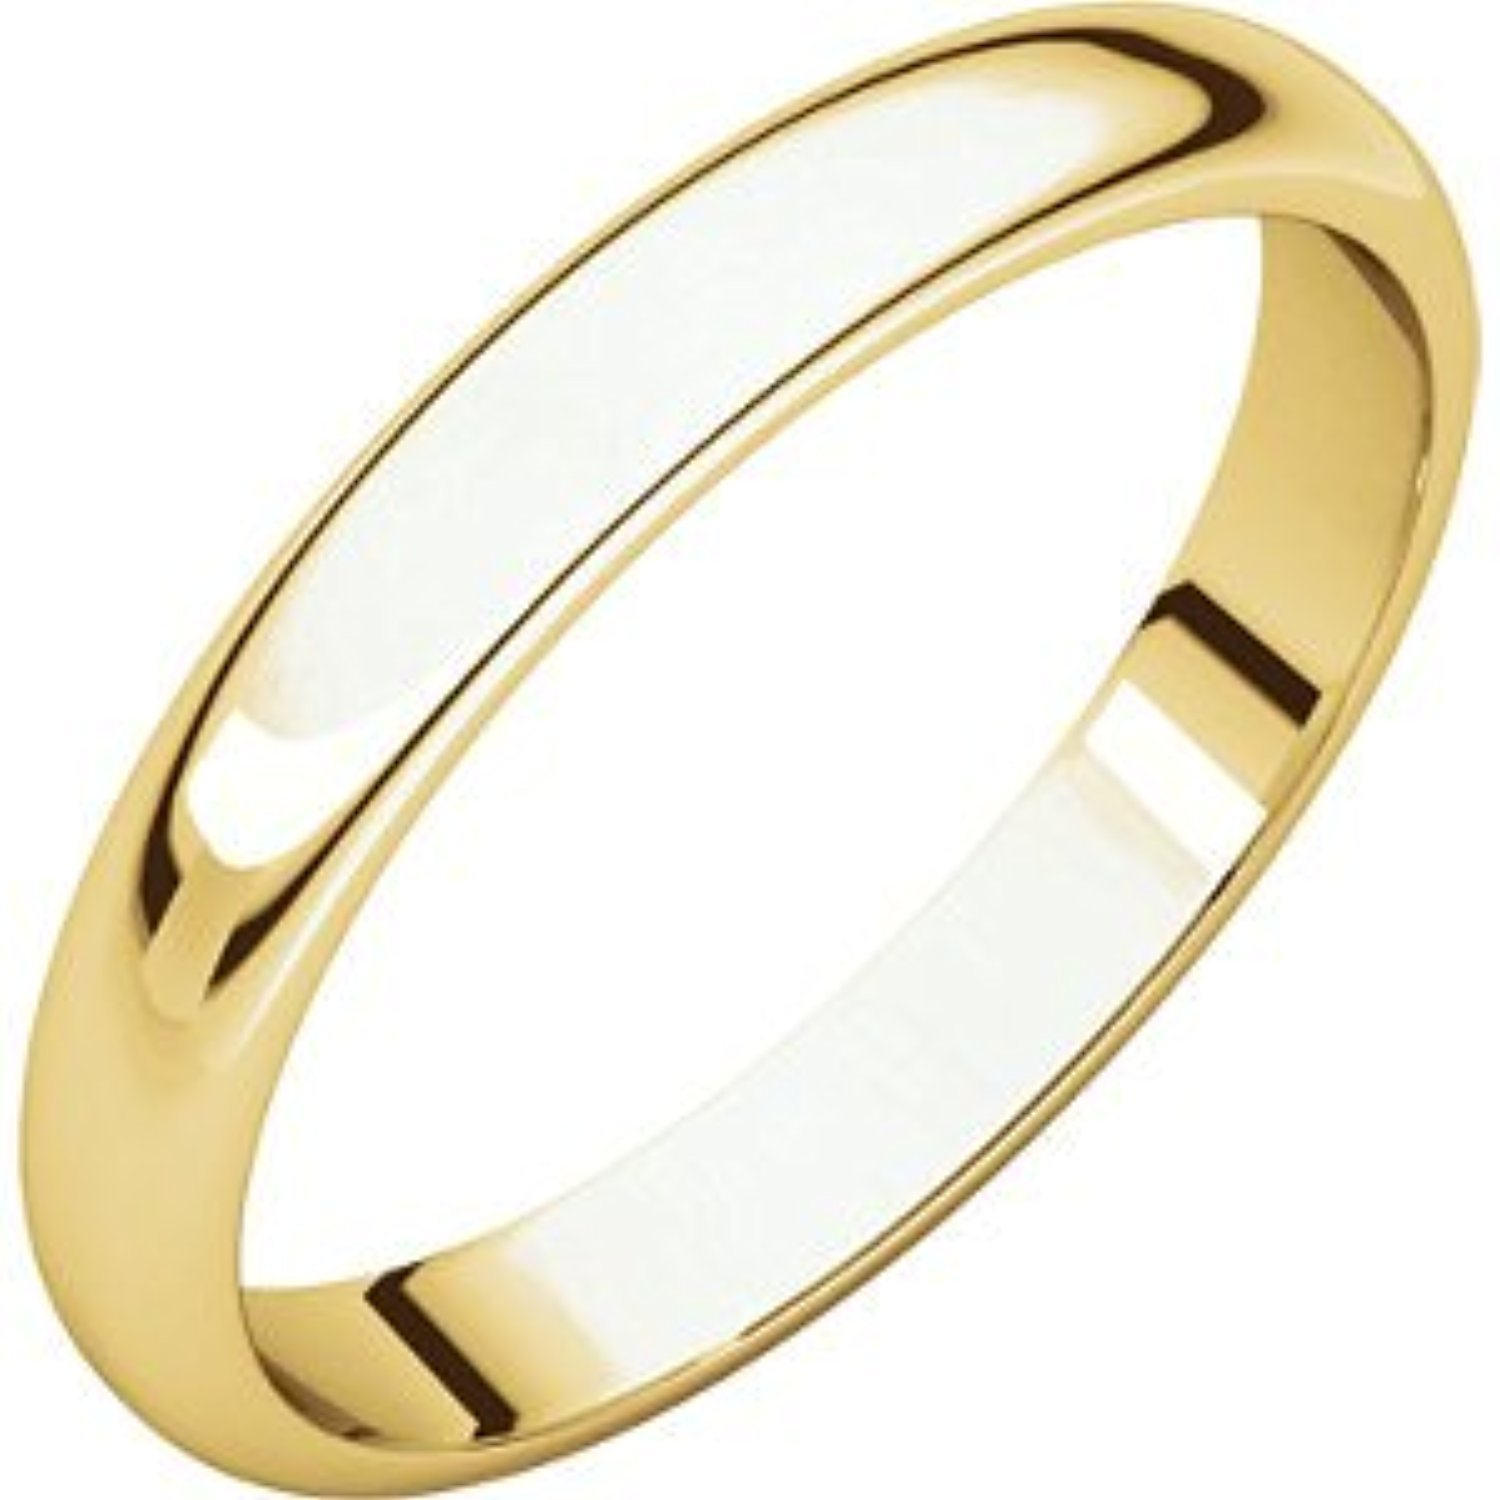 Size 11 14K Yellow Gold Light Half Round Band